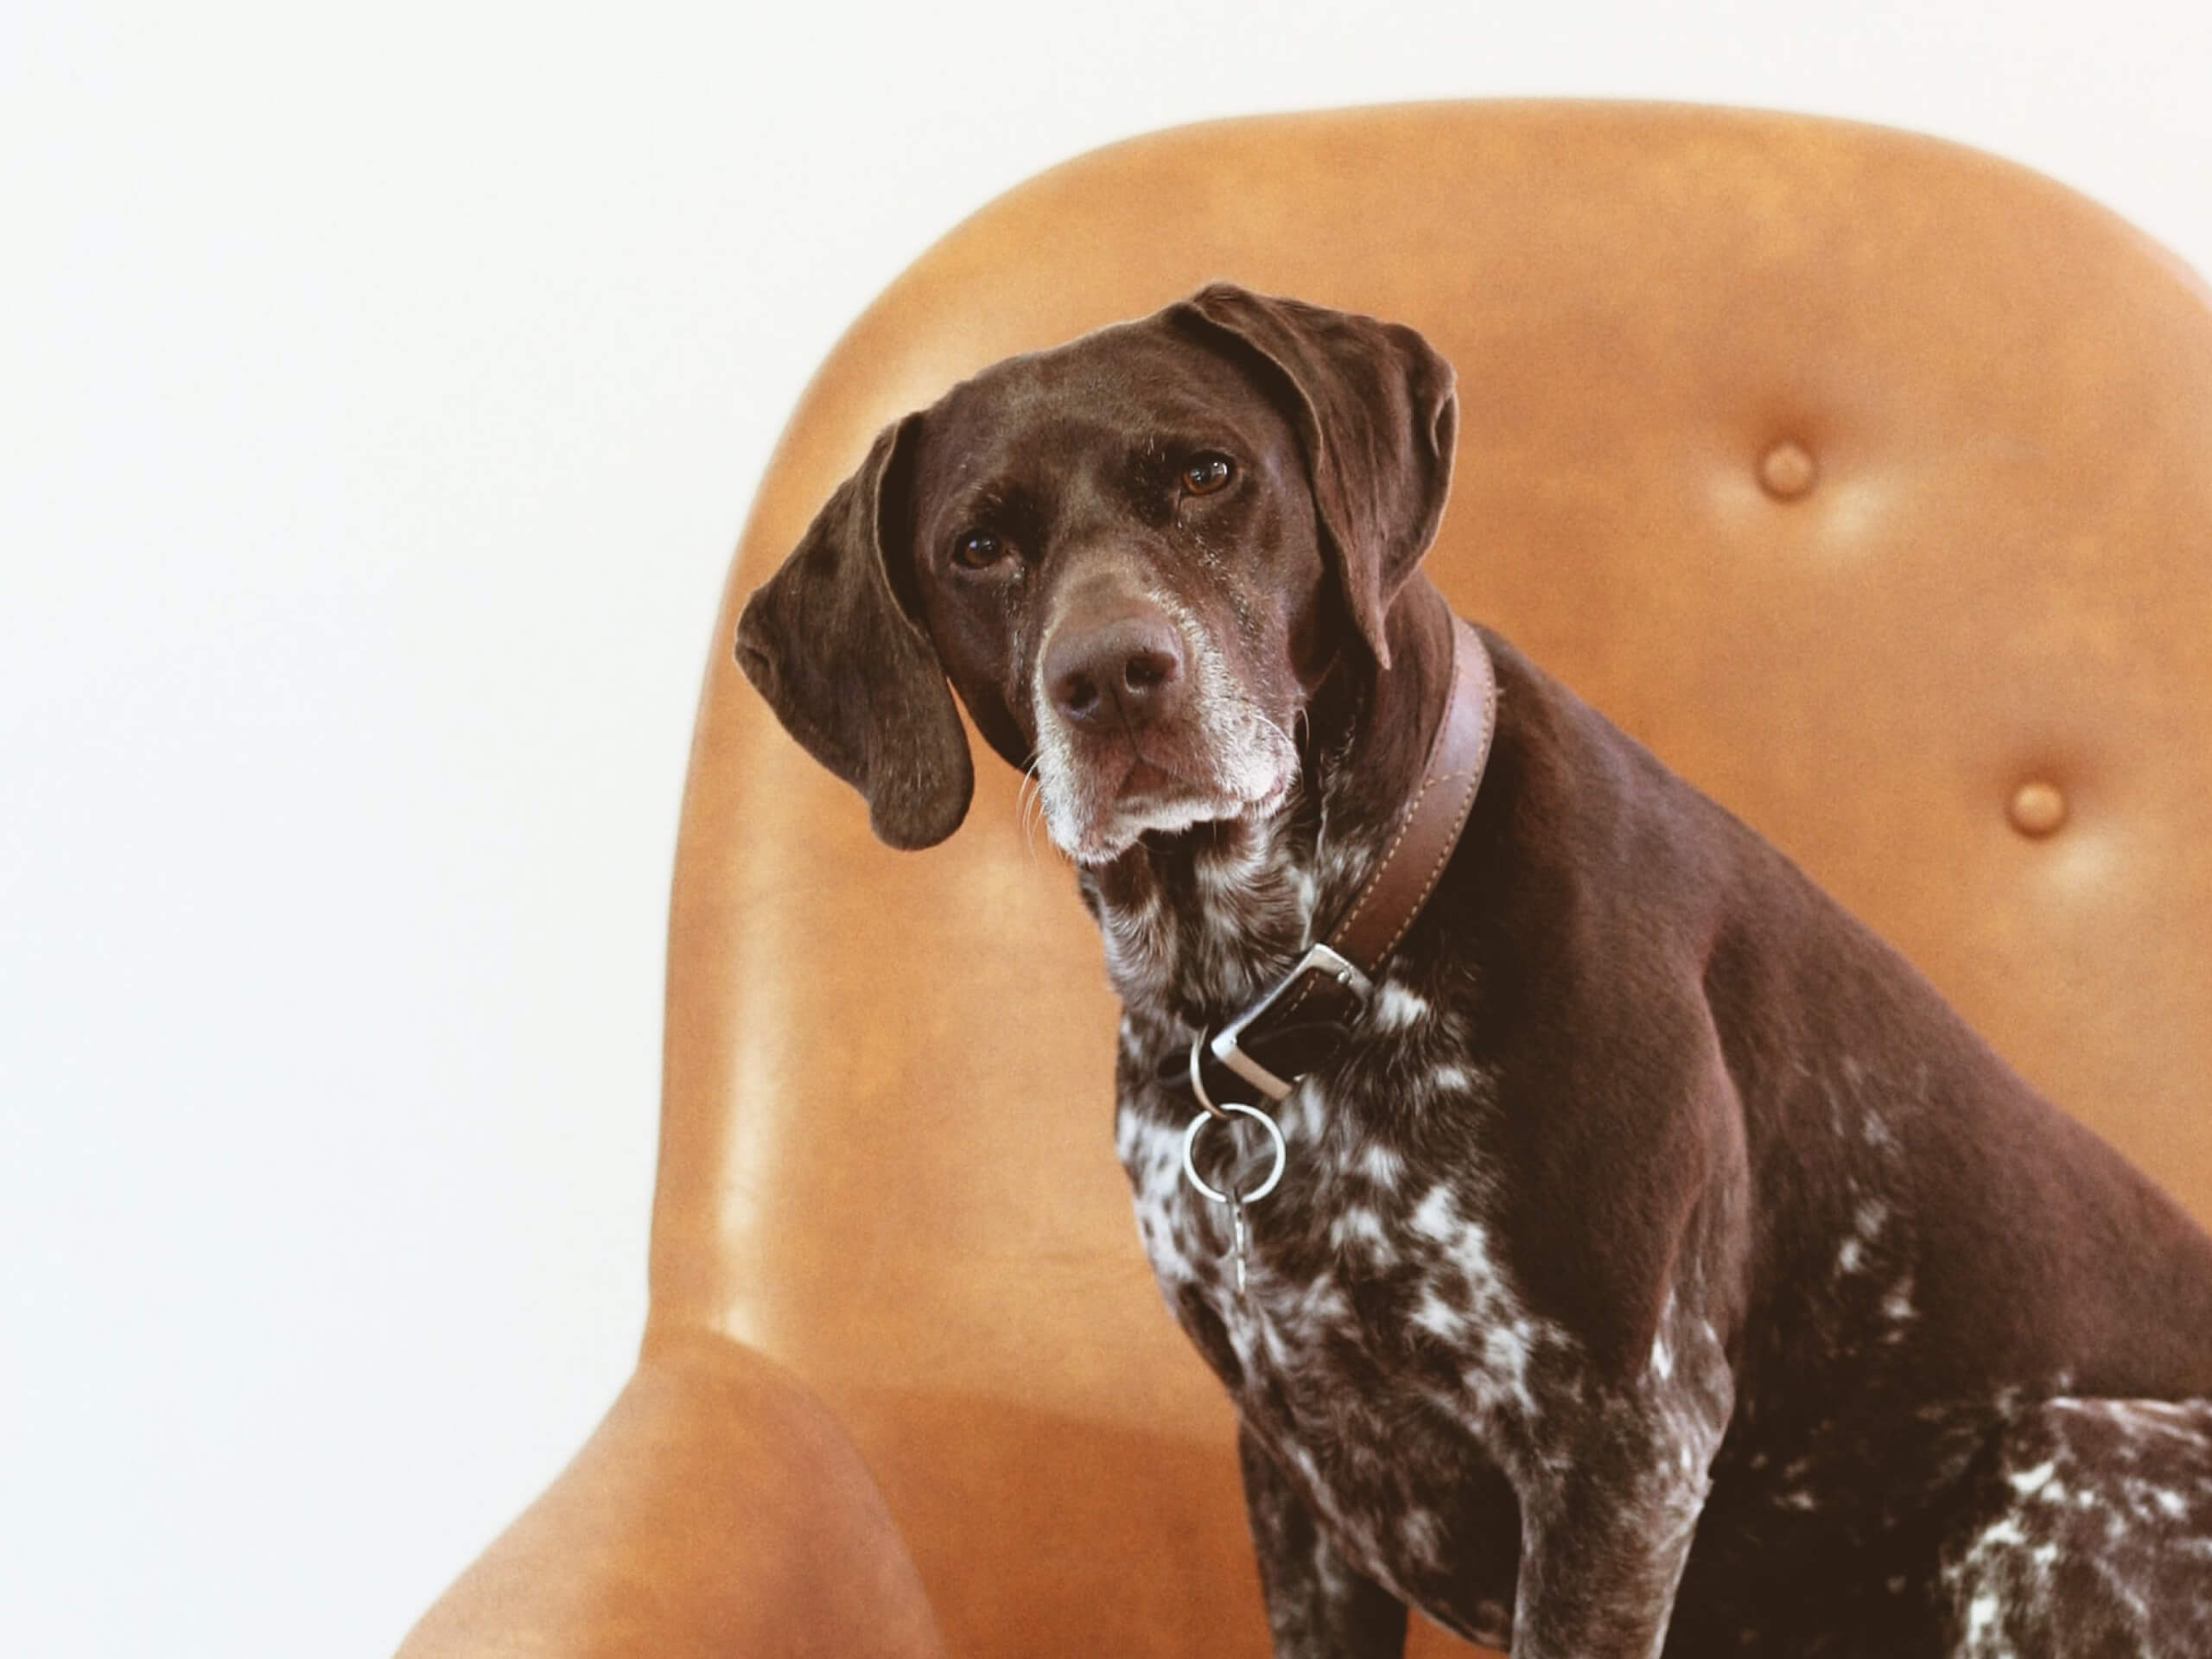 A brown and white mixed older dog sitting on a leather chair.